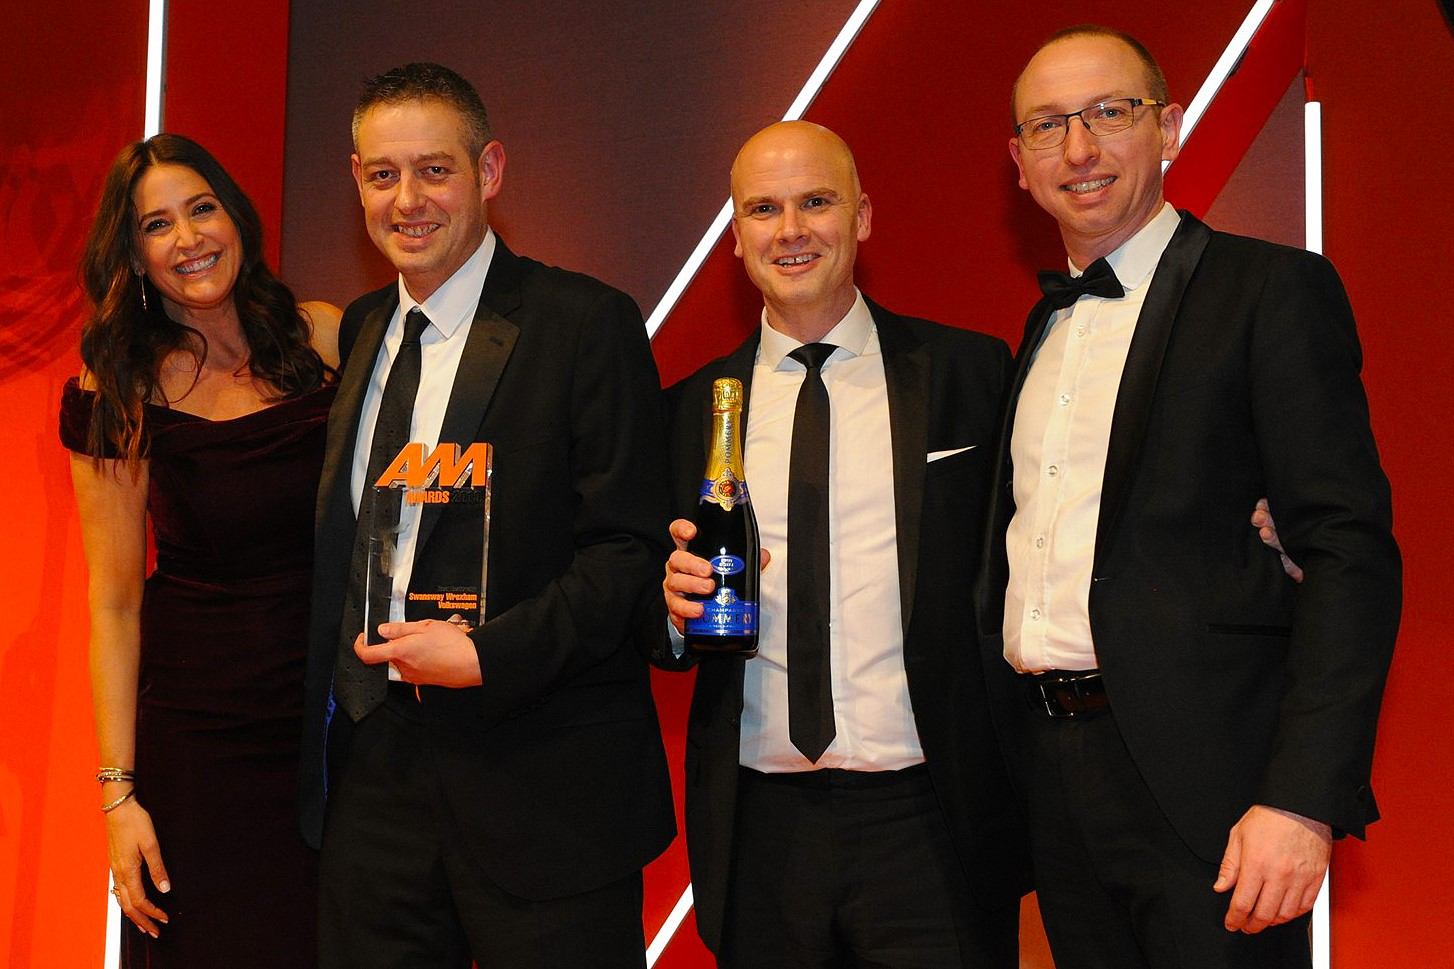 Gary Wood, brand manager, second from left, and Ben Gilbert, brand director, second from right,  accepts the award from Bertrand Scheenaerts, European  business development manager, Rhino Events, right, and Lisa Snowdon, left